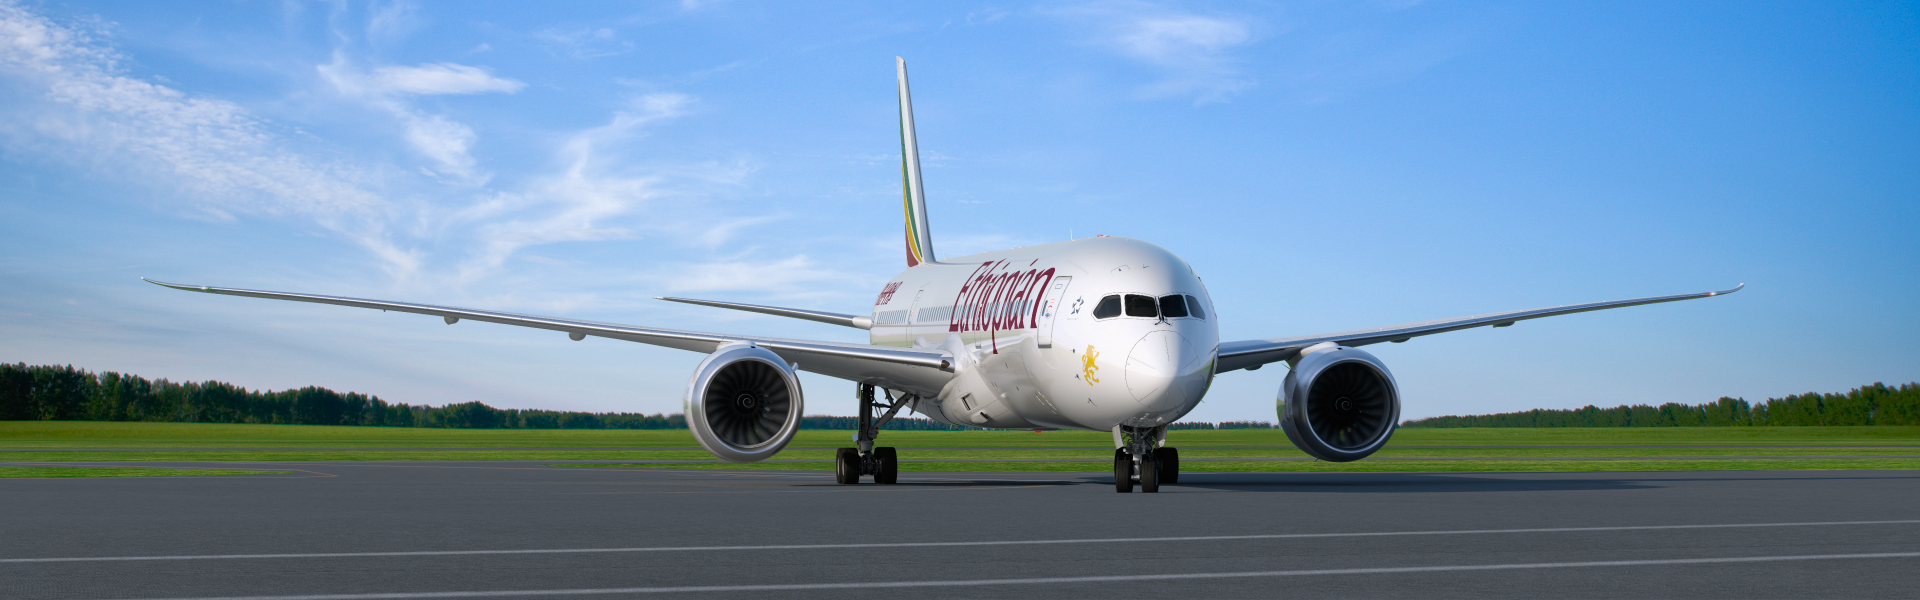 ETHIOPIAN AIRLINES AFFILIATE PROGRAM